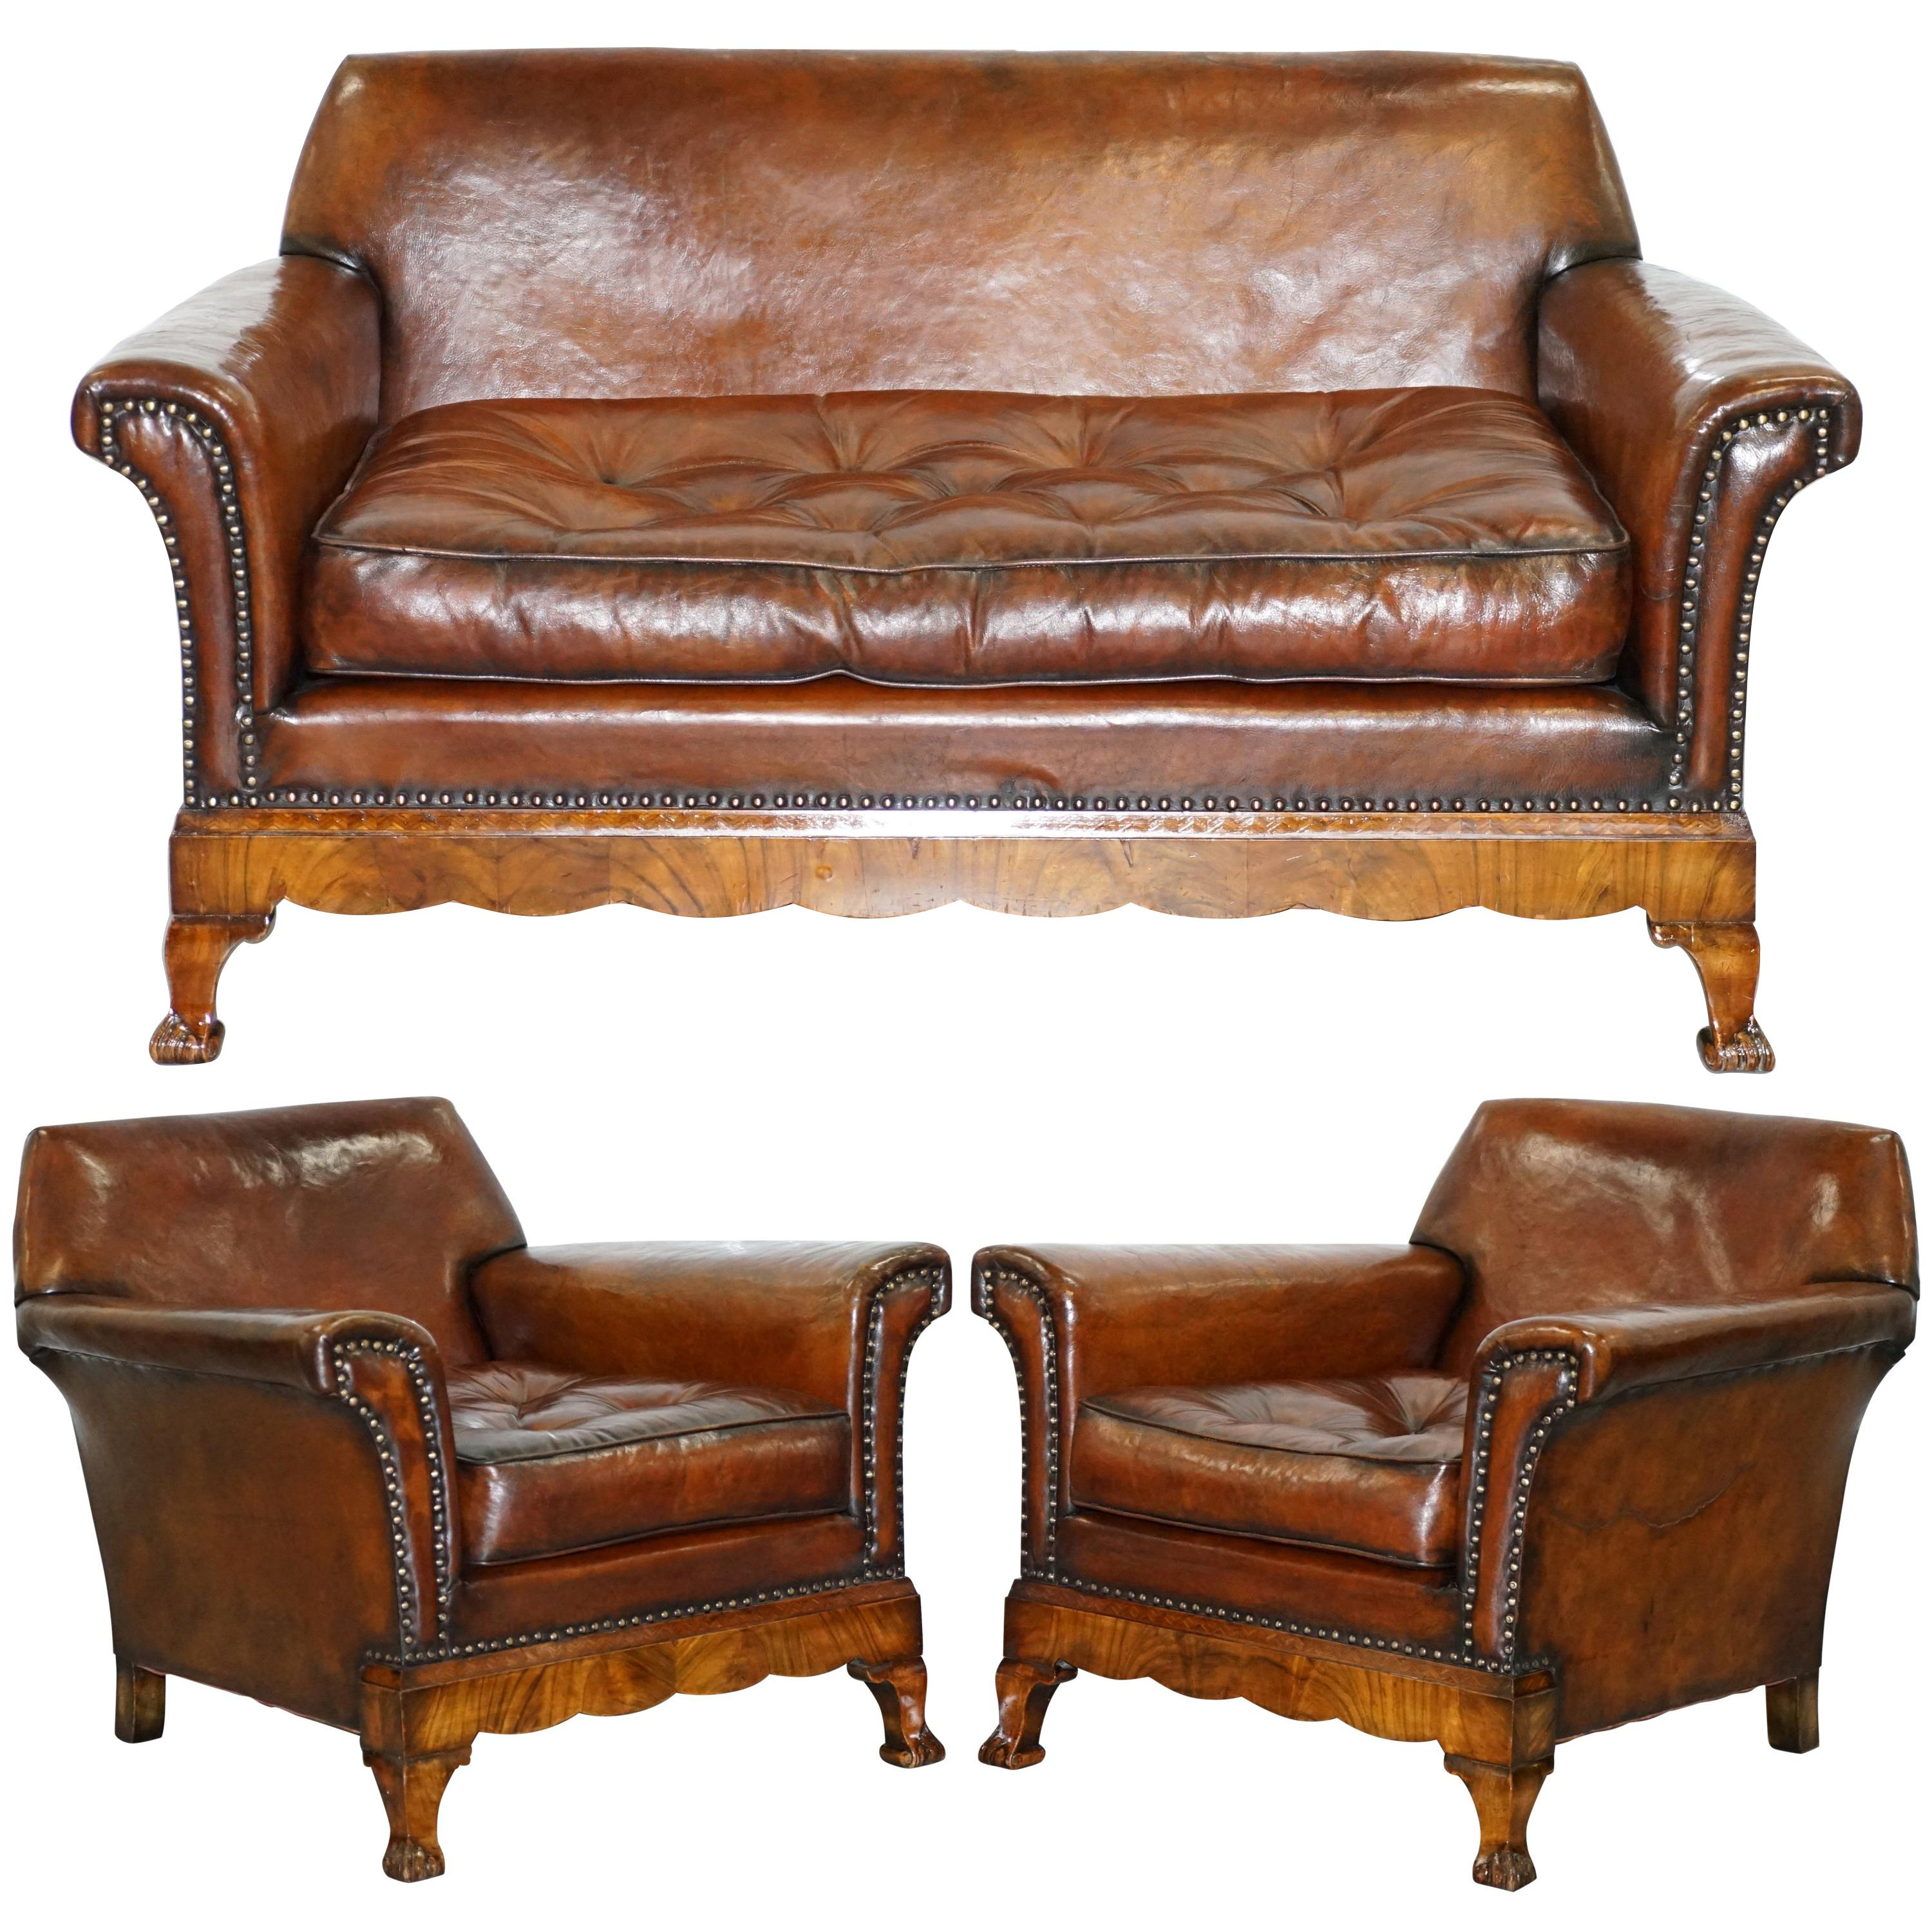 Thomas Chippendale Marquetry Walnut Inlay Brown Leather Sofa And Armchairs Suite For At 1stdibs